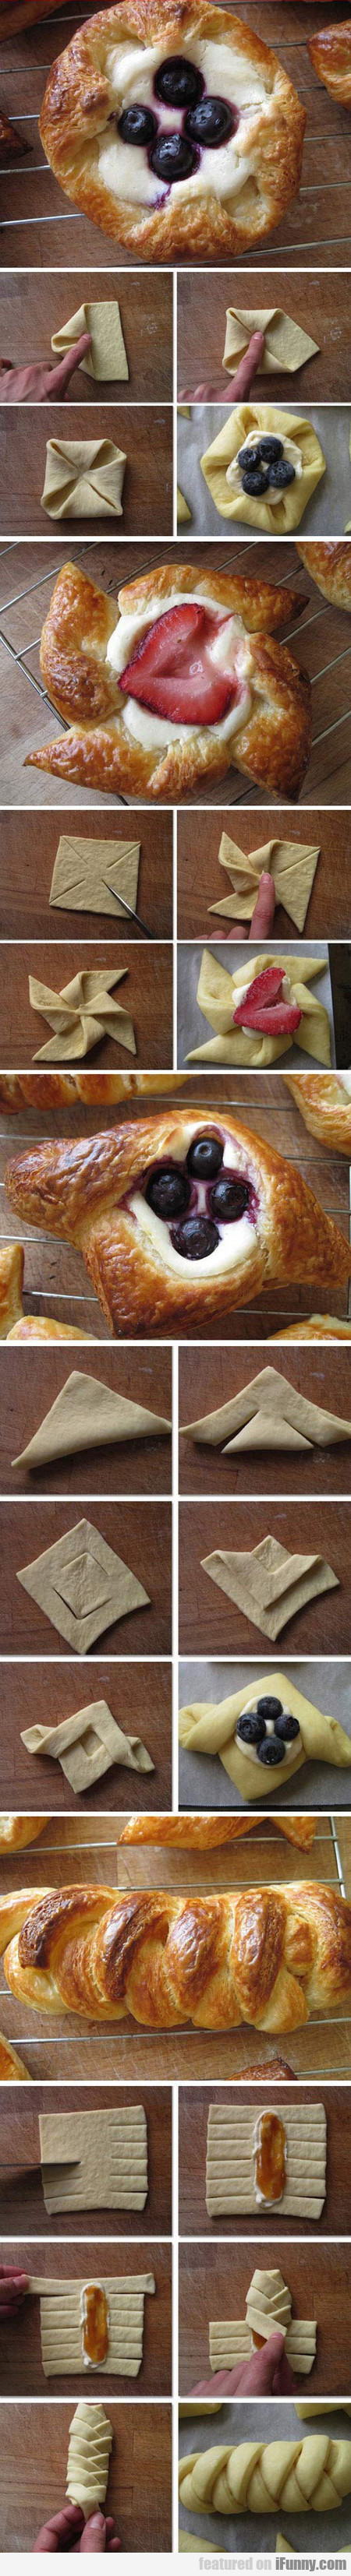 Here's How To Do Pastry Right